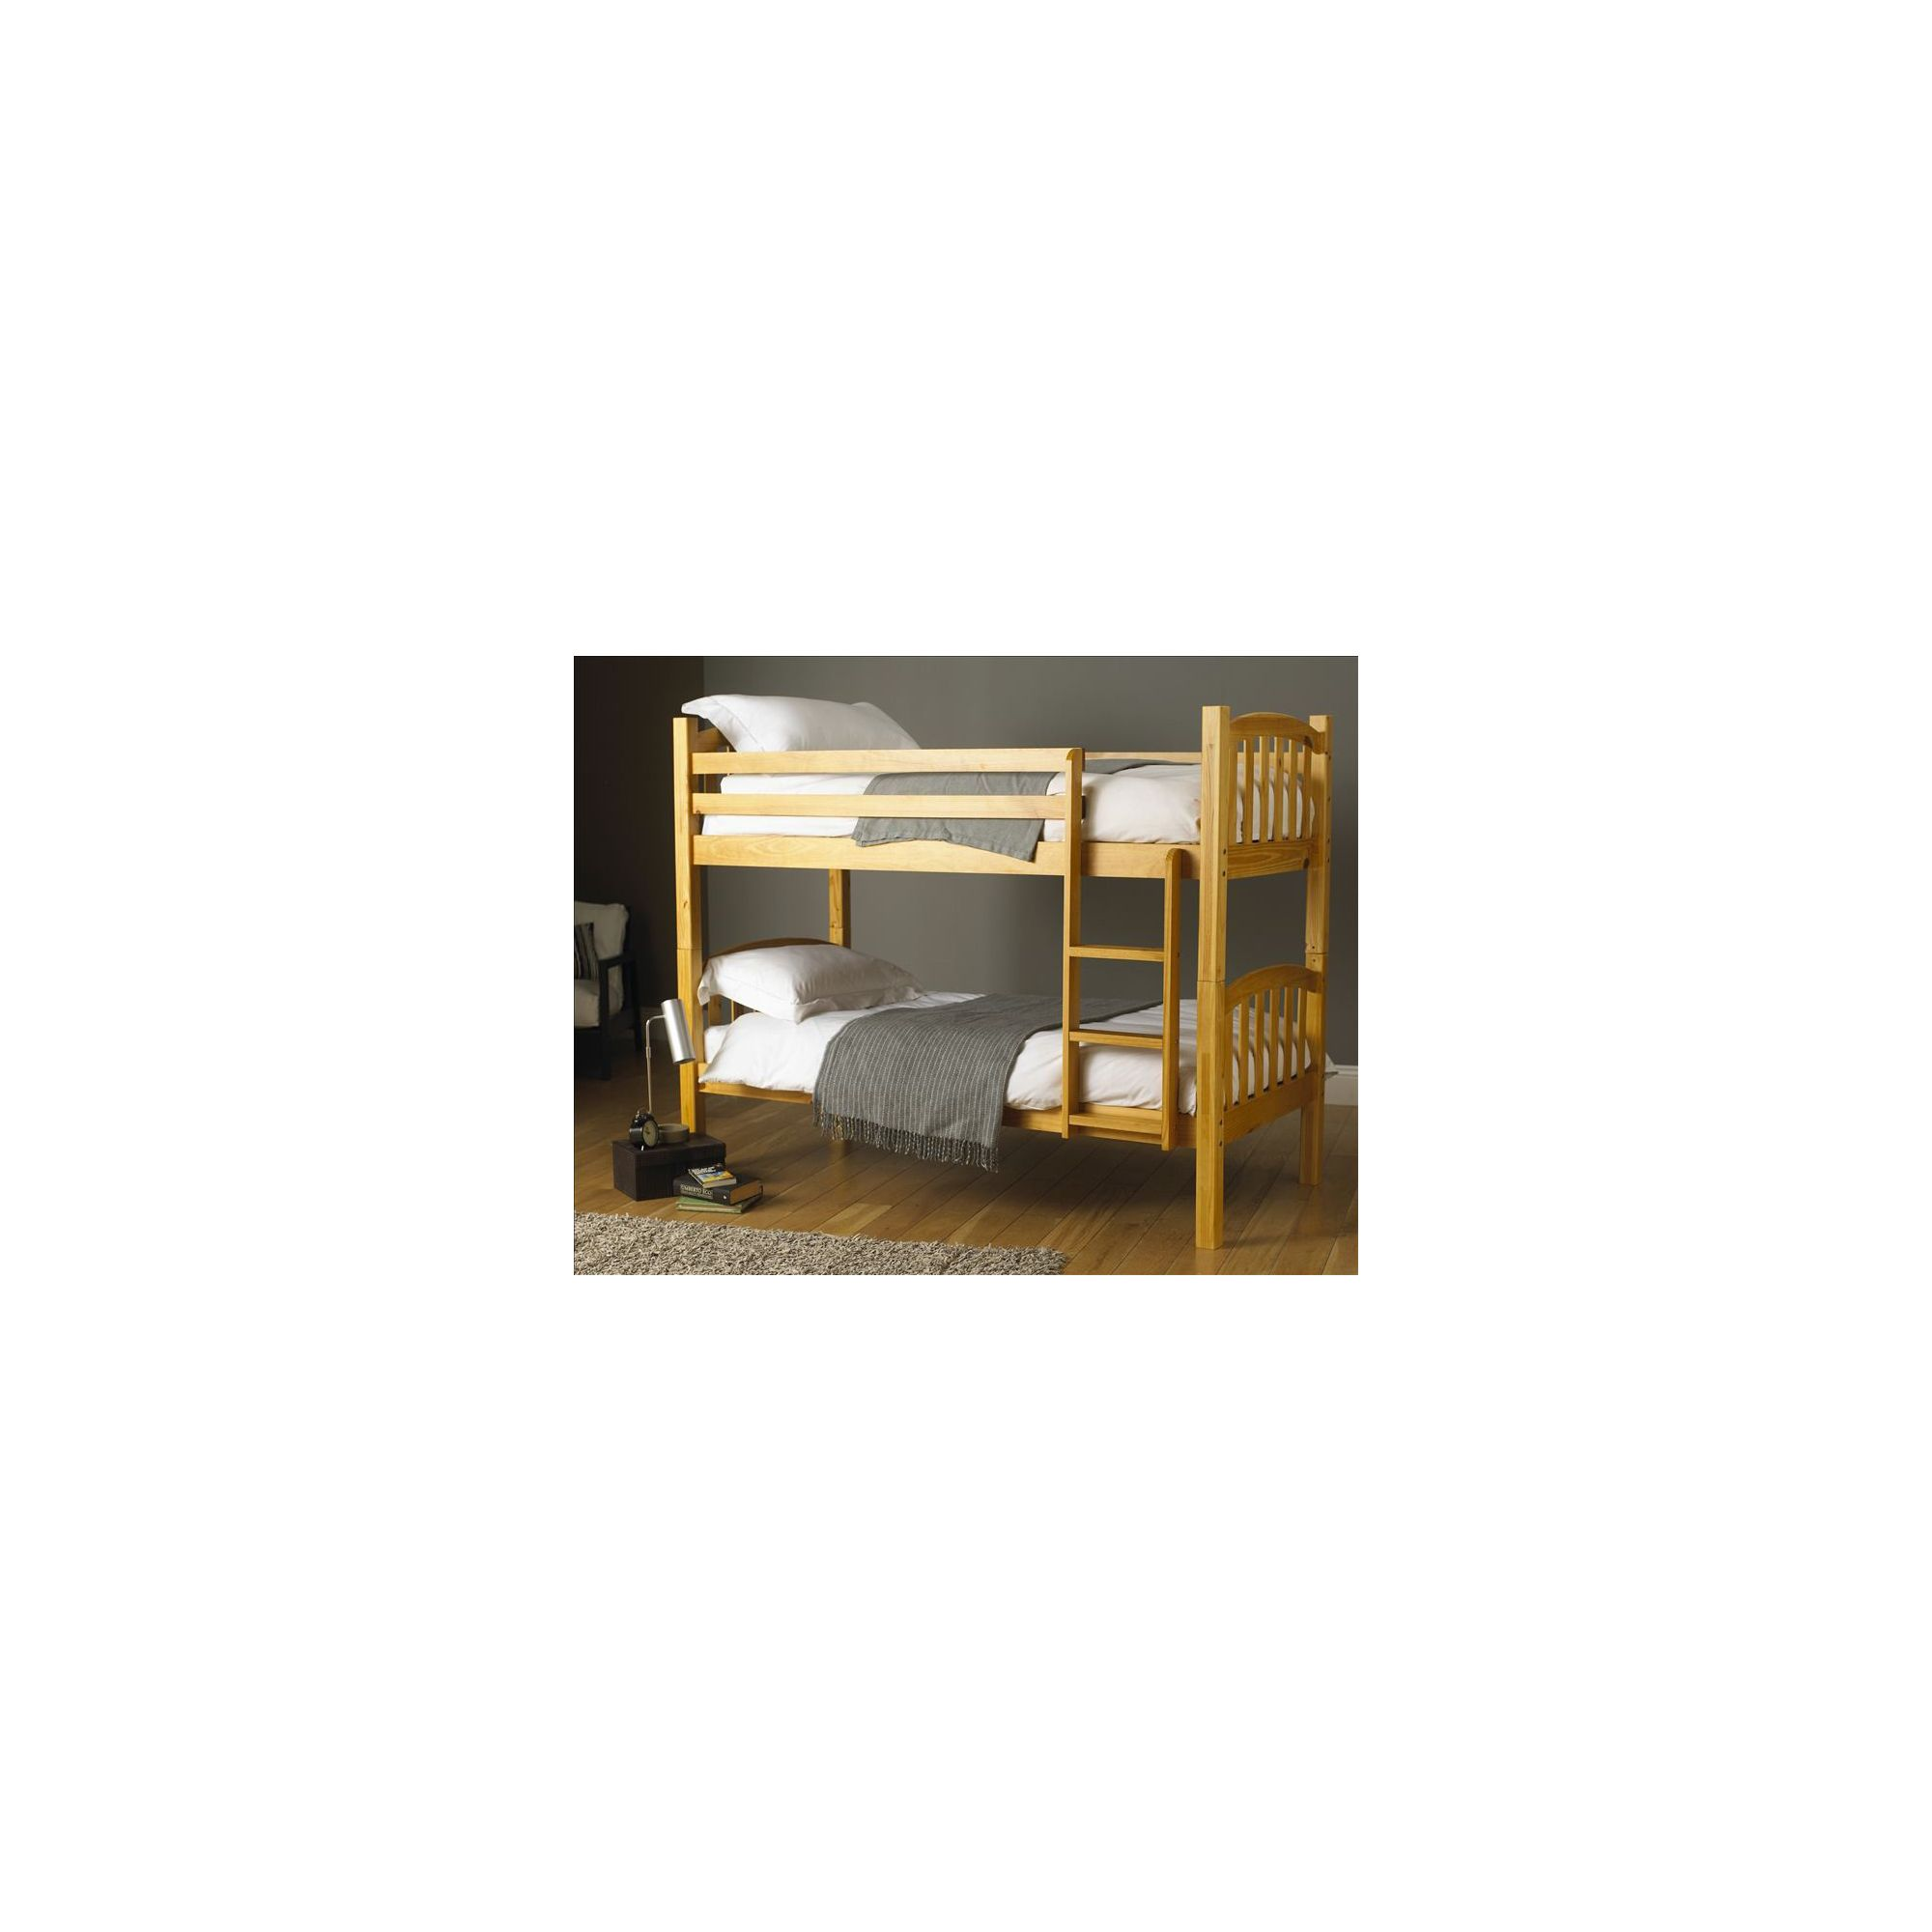 Hyder Montreal Pine Bunk Bed Frame - 2 Single Included at Tesco Direct